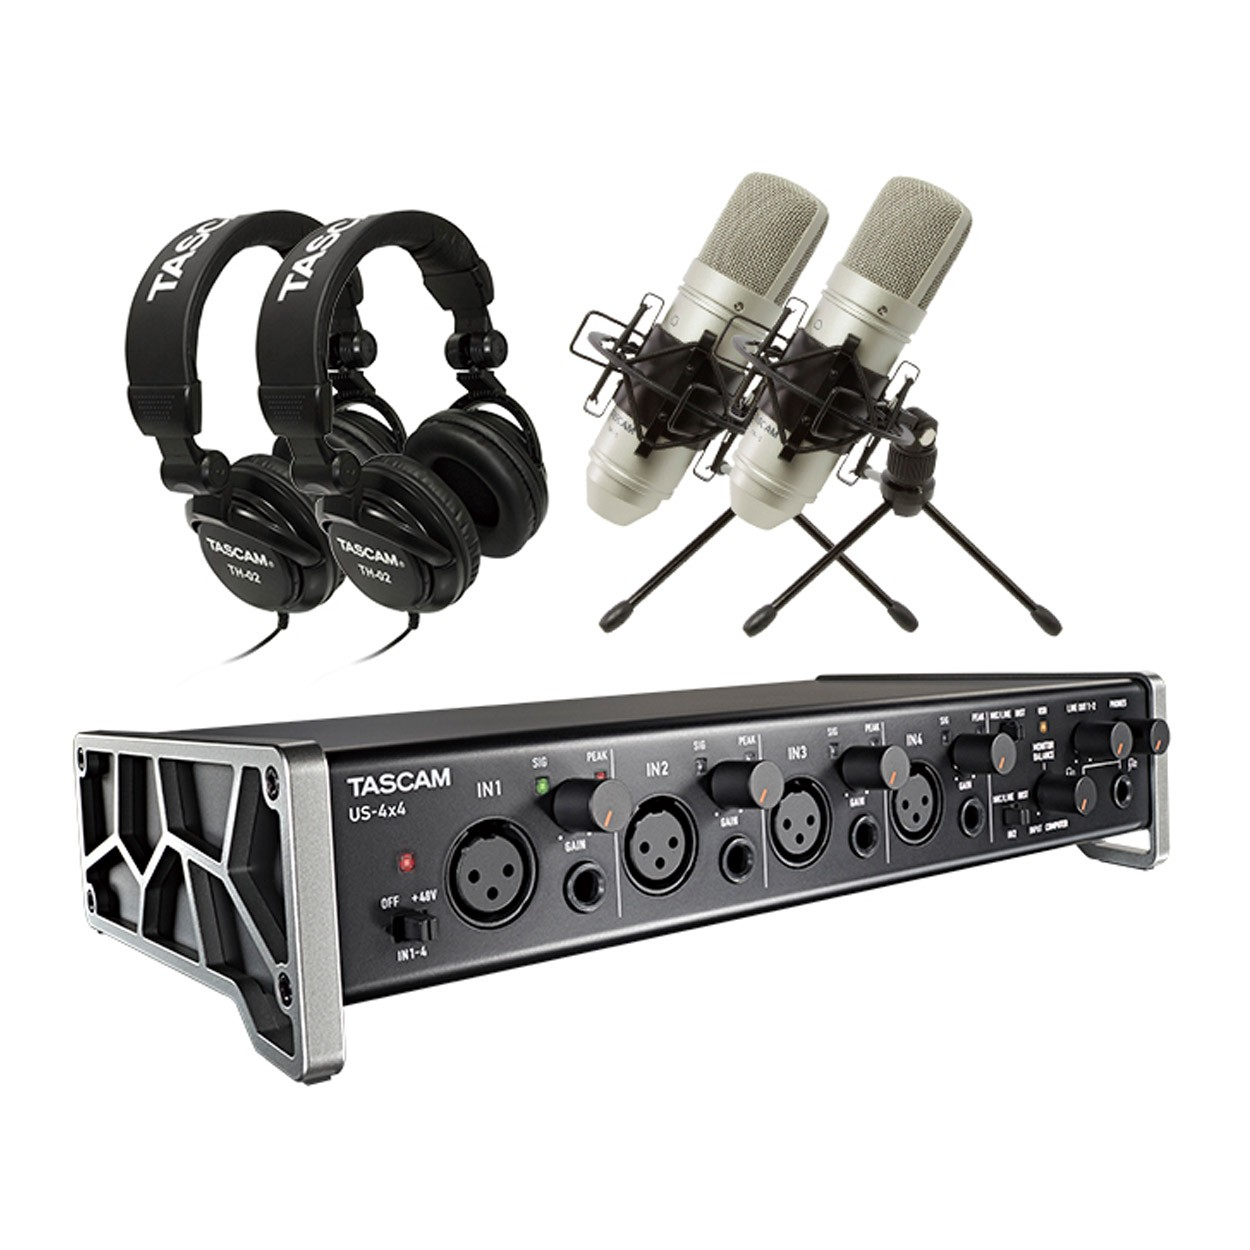 tascam trackpack 4x4 complete recording studio for pack music machine musical instruments nz. Black Bedroom Furniture Sets. Home Design Ideas